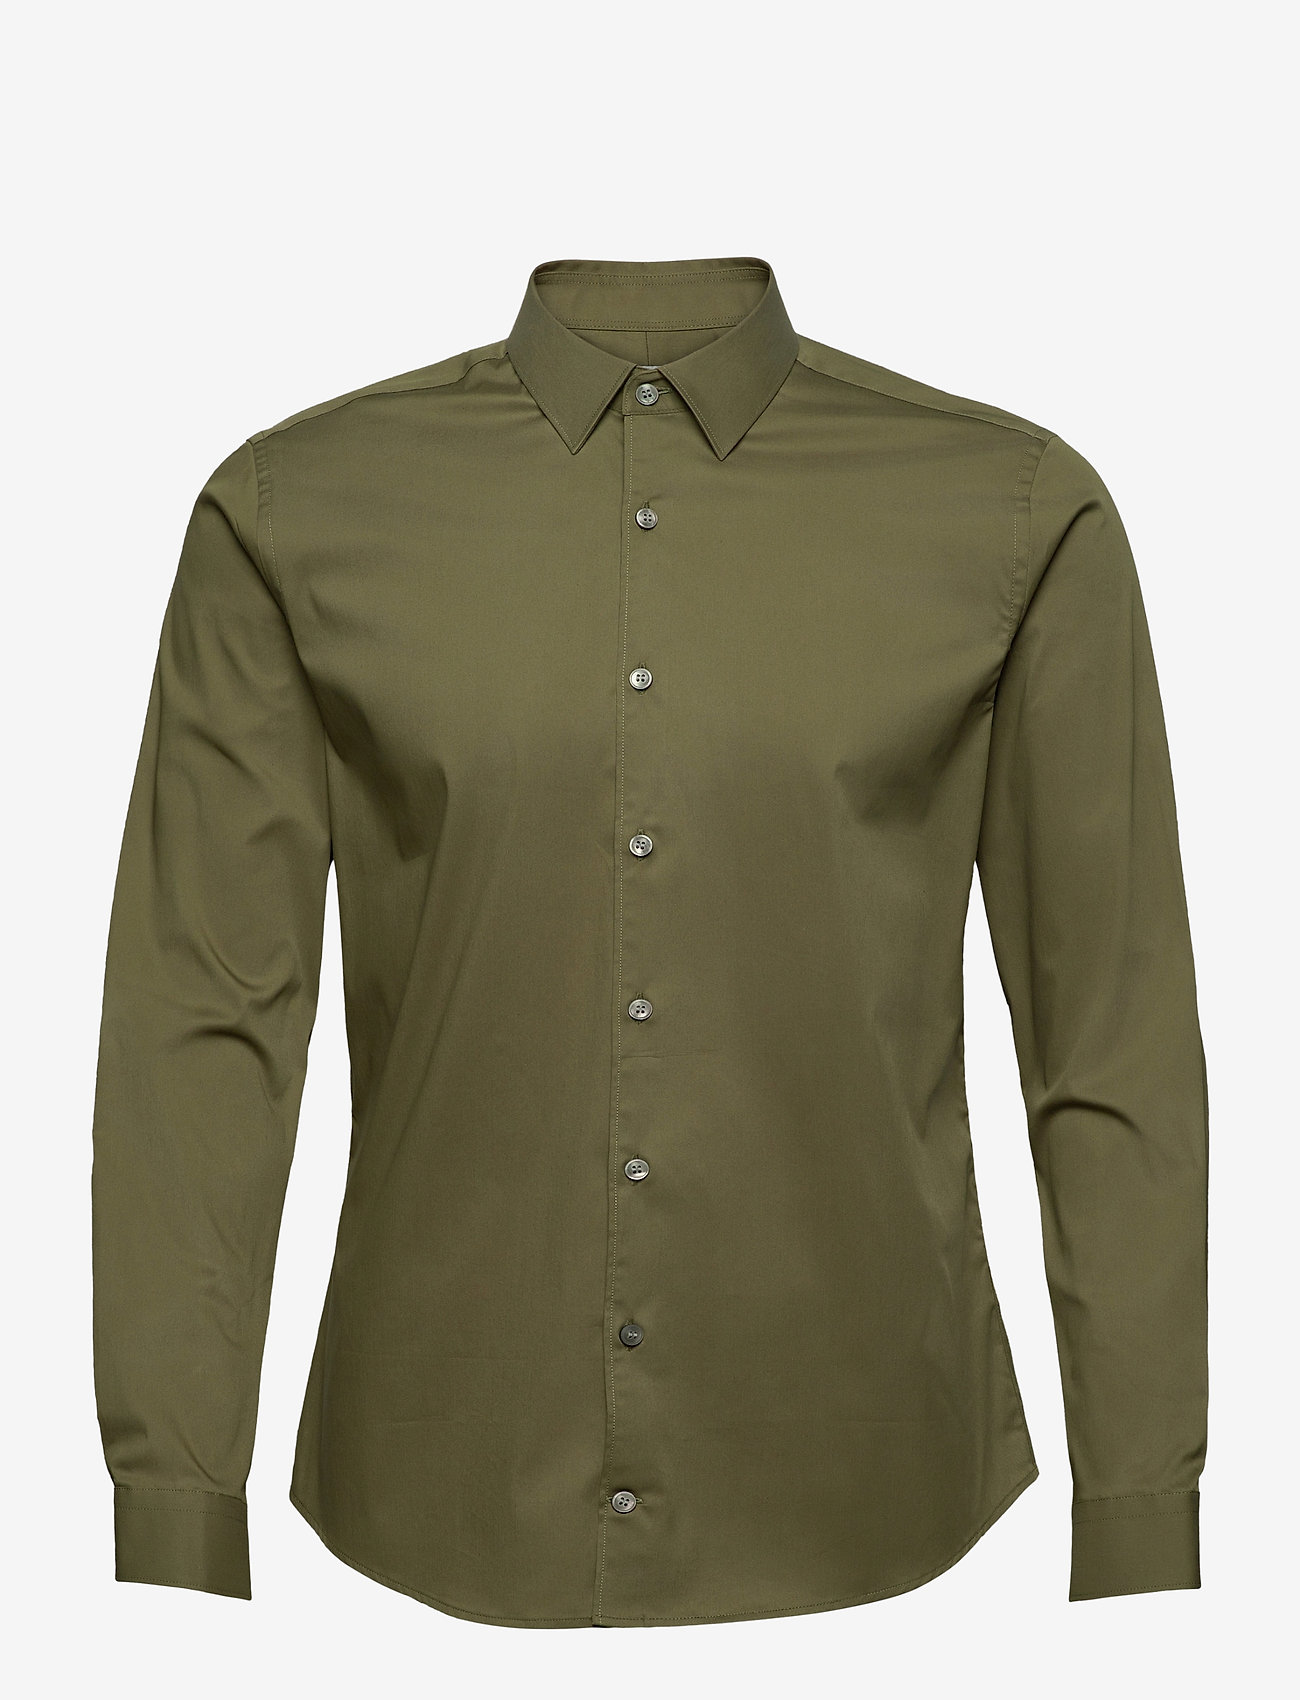 Tiger of Sweden - FILBRODIE - basic skjorter - olive green - 0